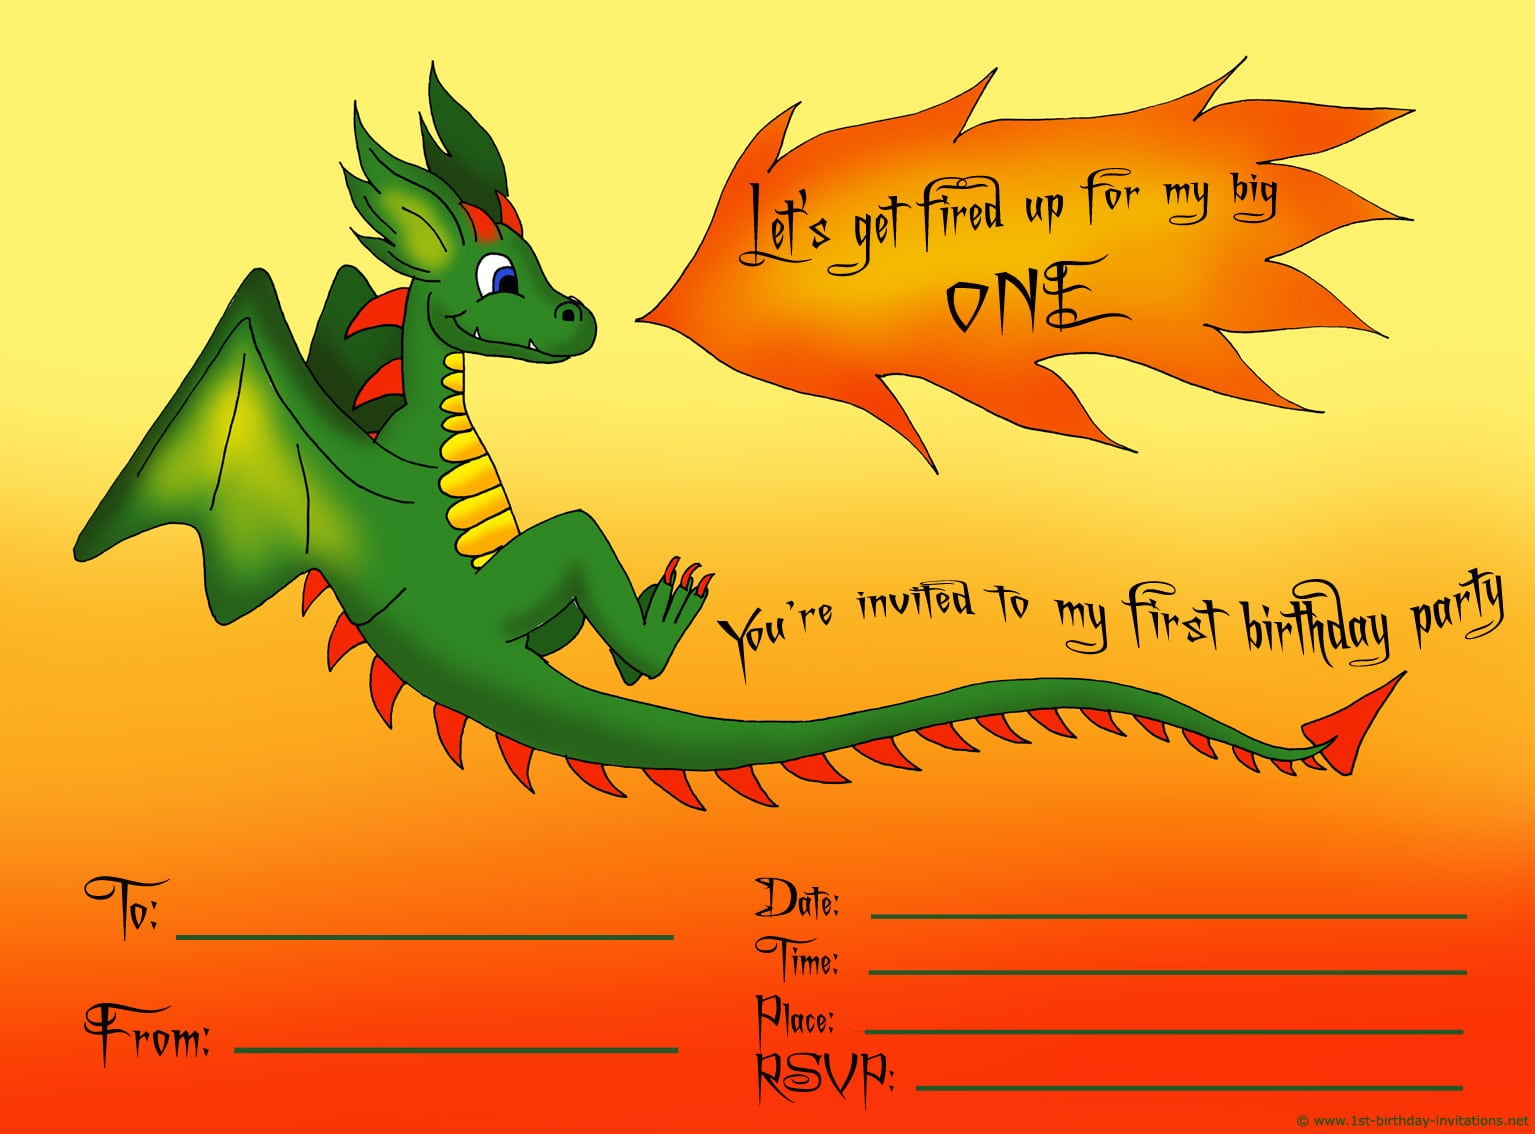 First Birthday Party Invitations  Free And Ready To Print